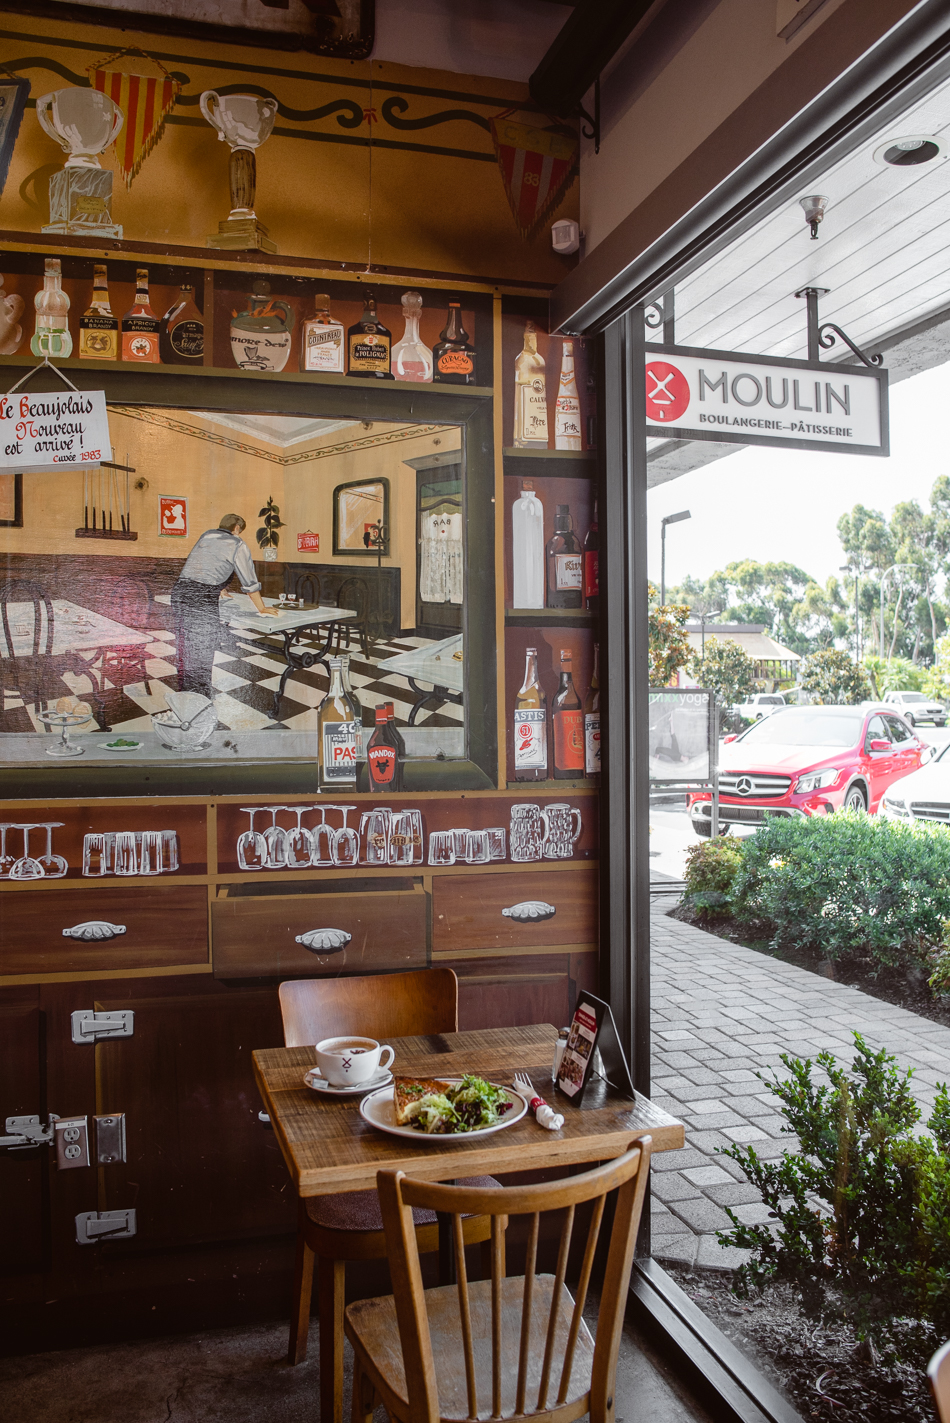 Moulin, an Authentic Parisian Bistro in Orange County - French Californian